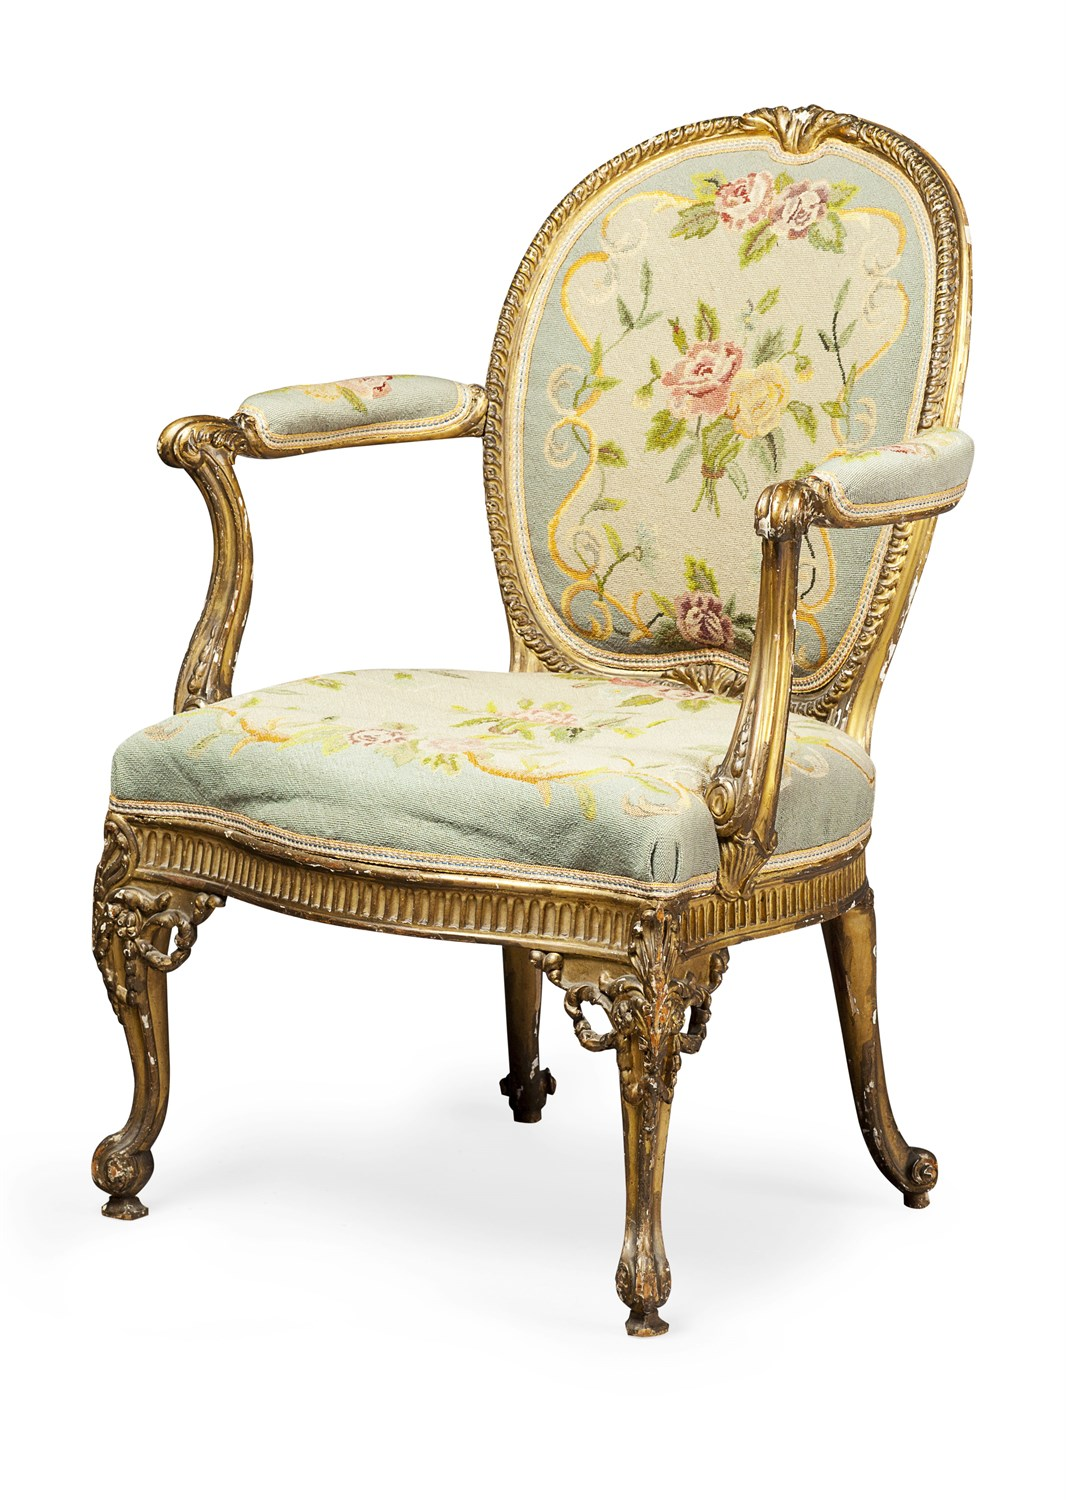 3 - GOOD GEORGE III GILTWOOD OPEN ARMCHAIR IN THE MANNER OF THOMAS CHIPPENDALE